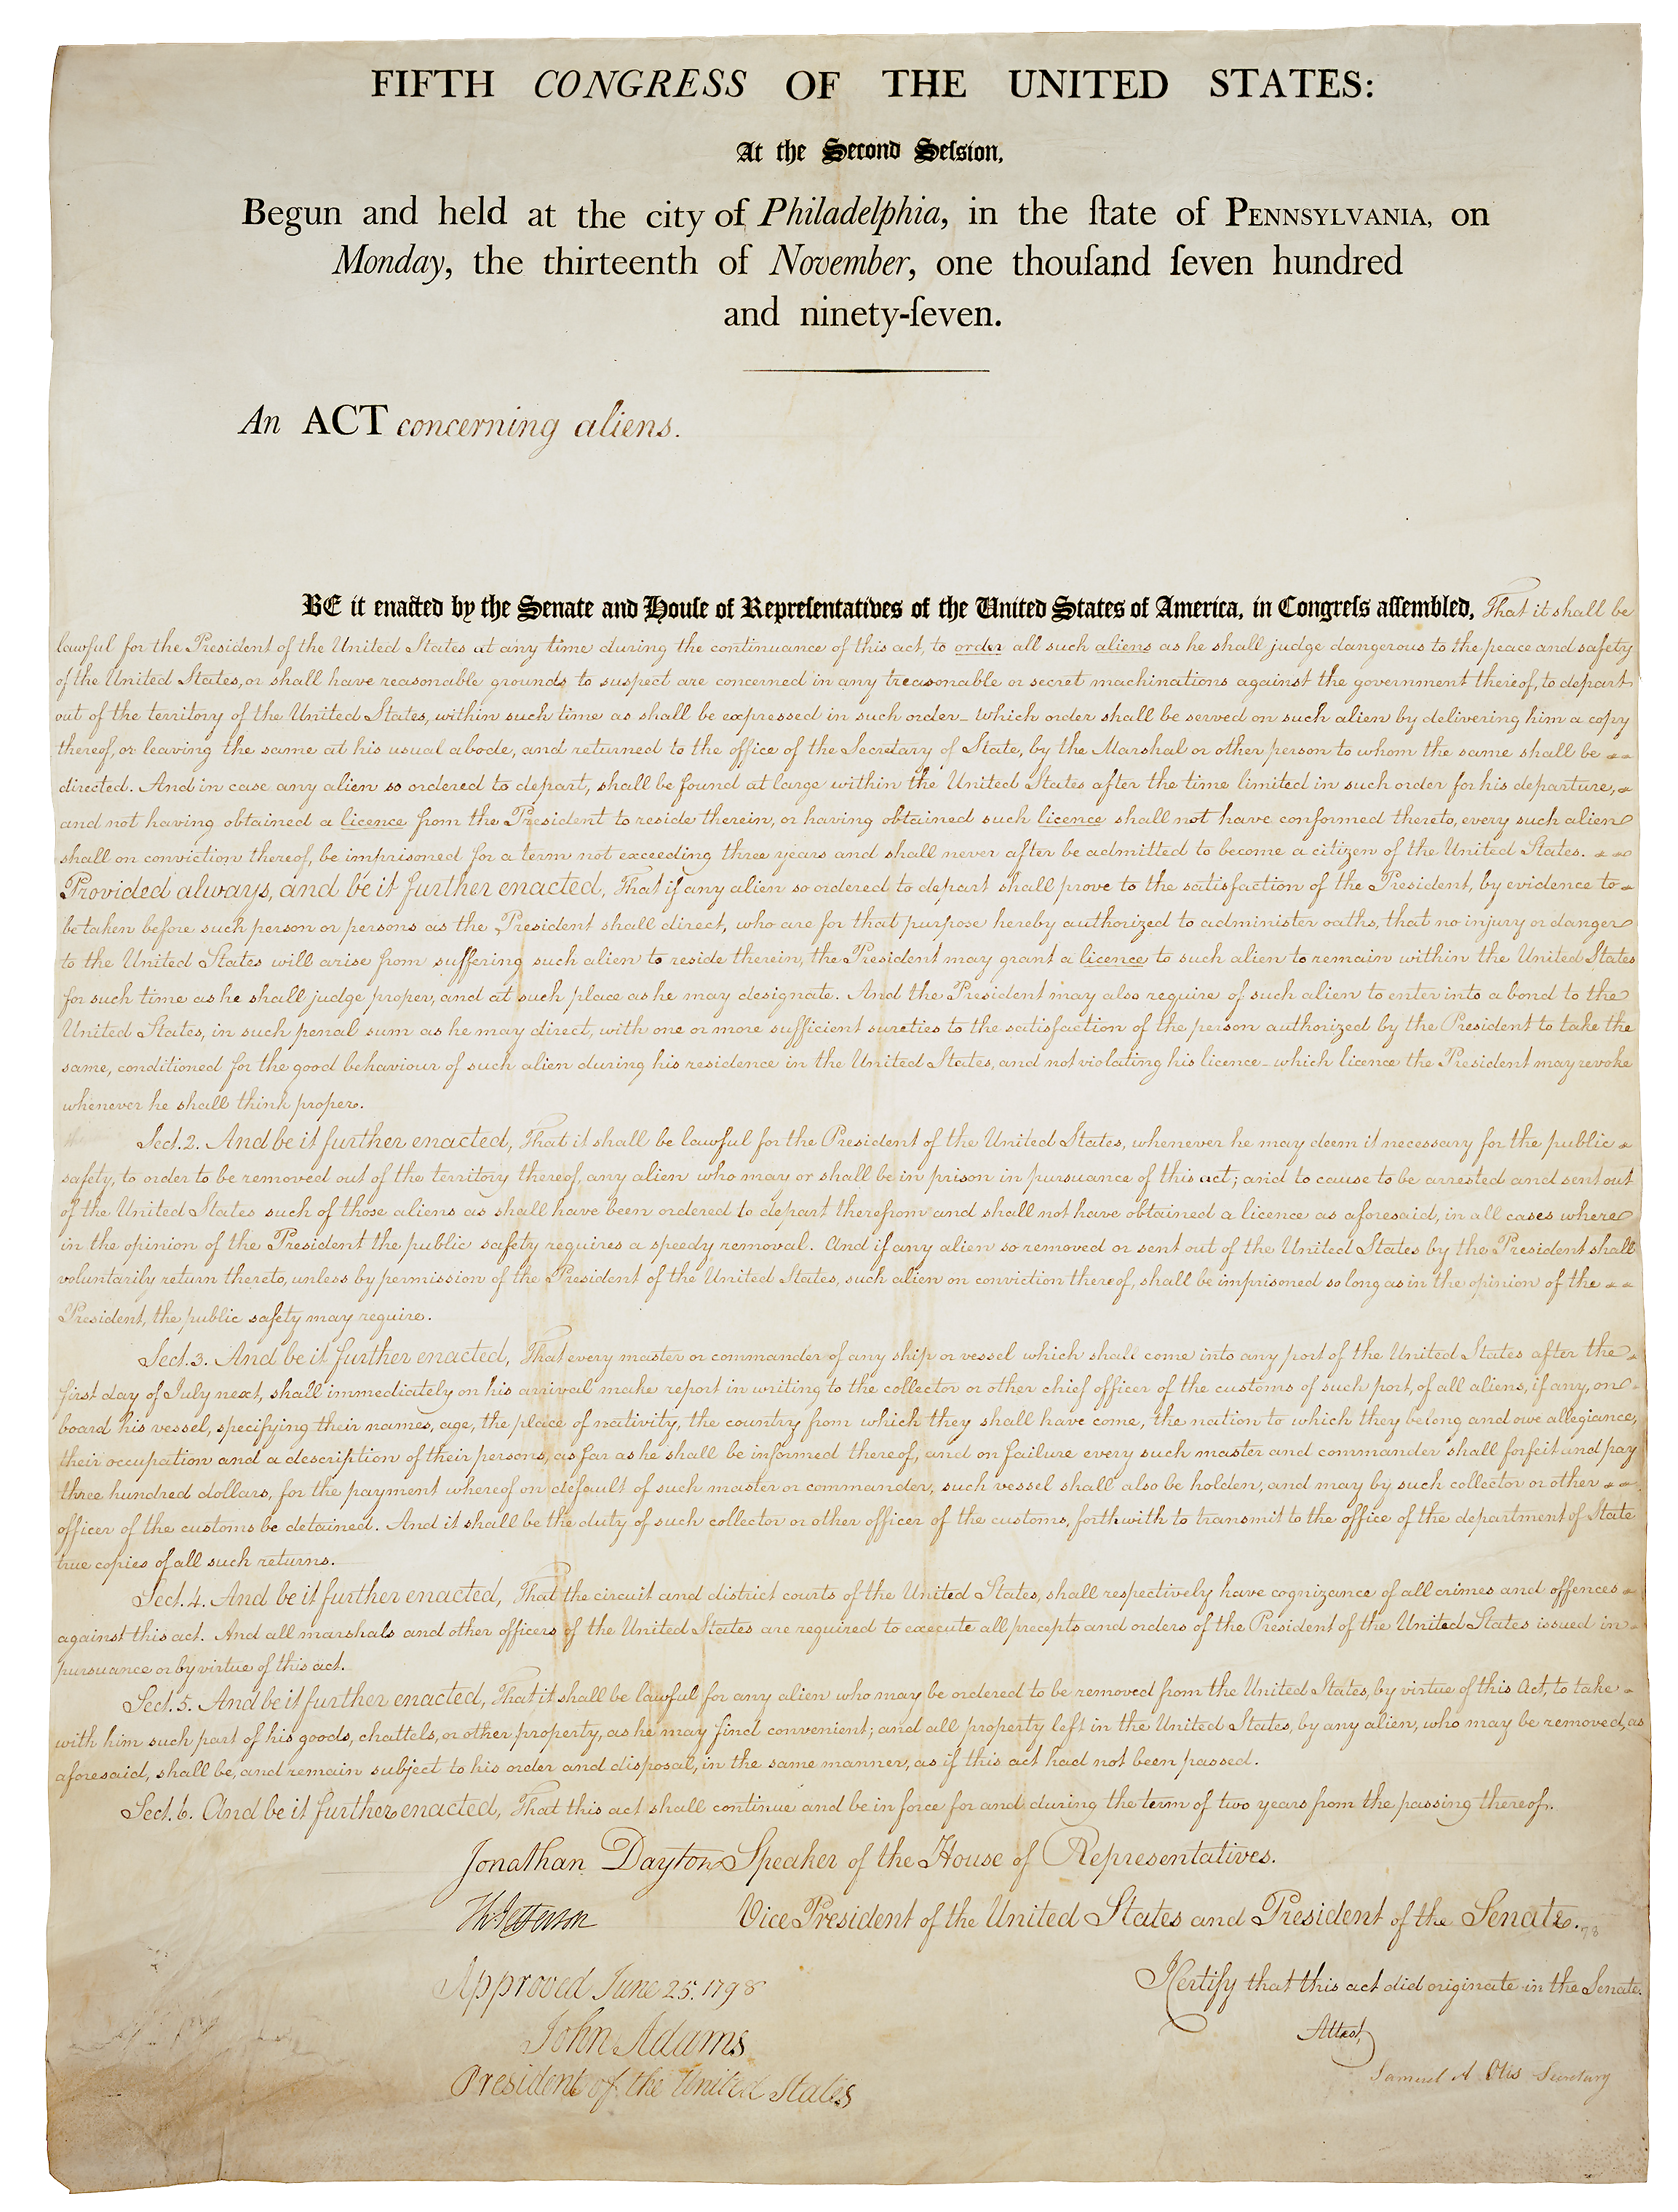 alien and sedition acts essay example Ap us history document based question - alien and sedition acts.